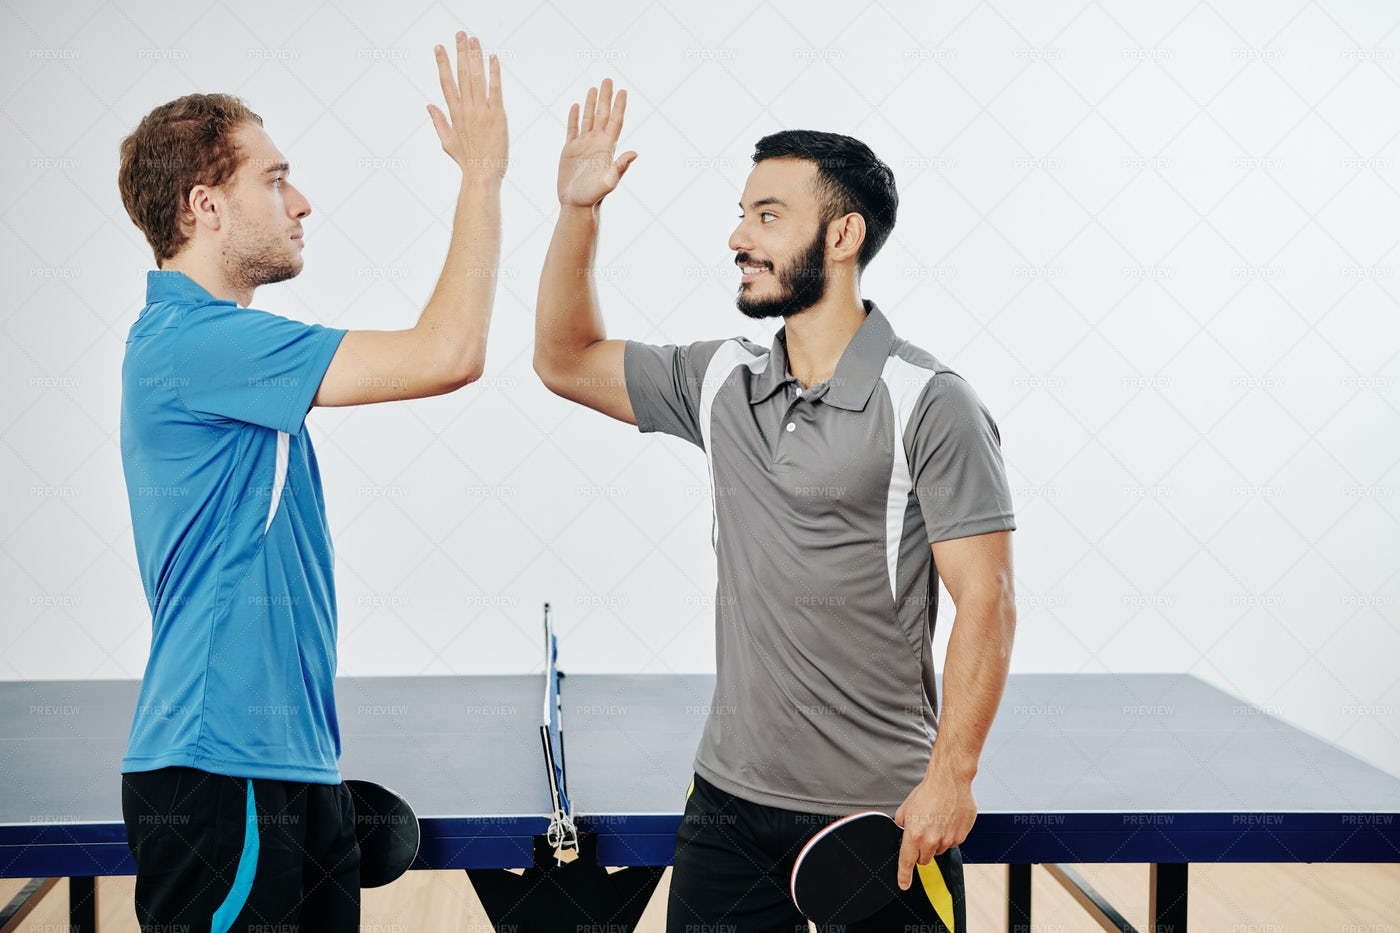 Ping Pong Players Giving High Five: Stock Photos